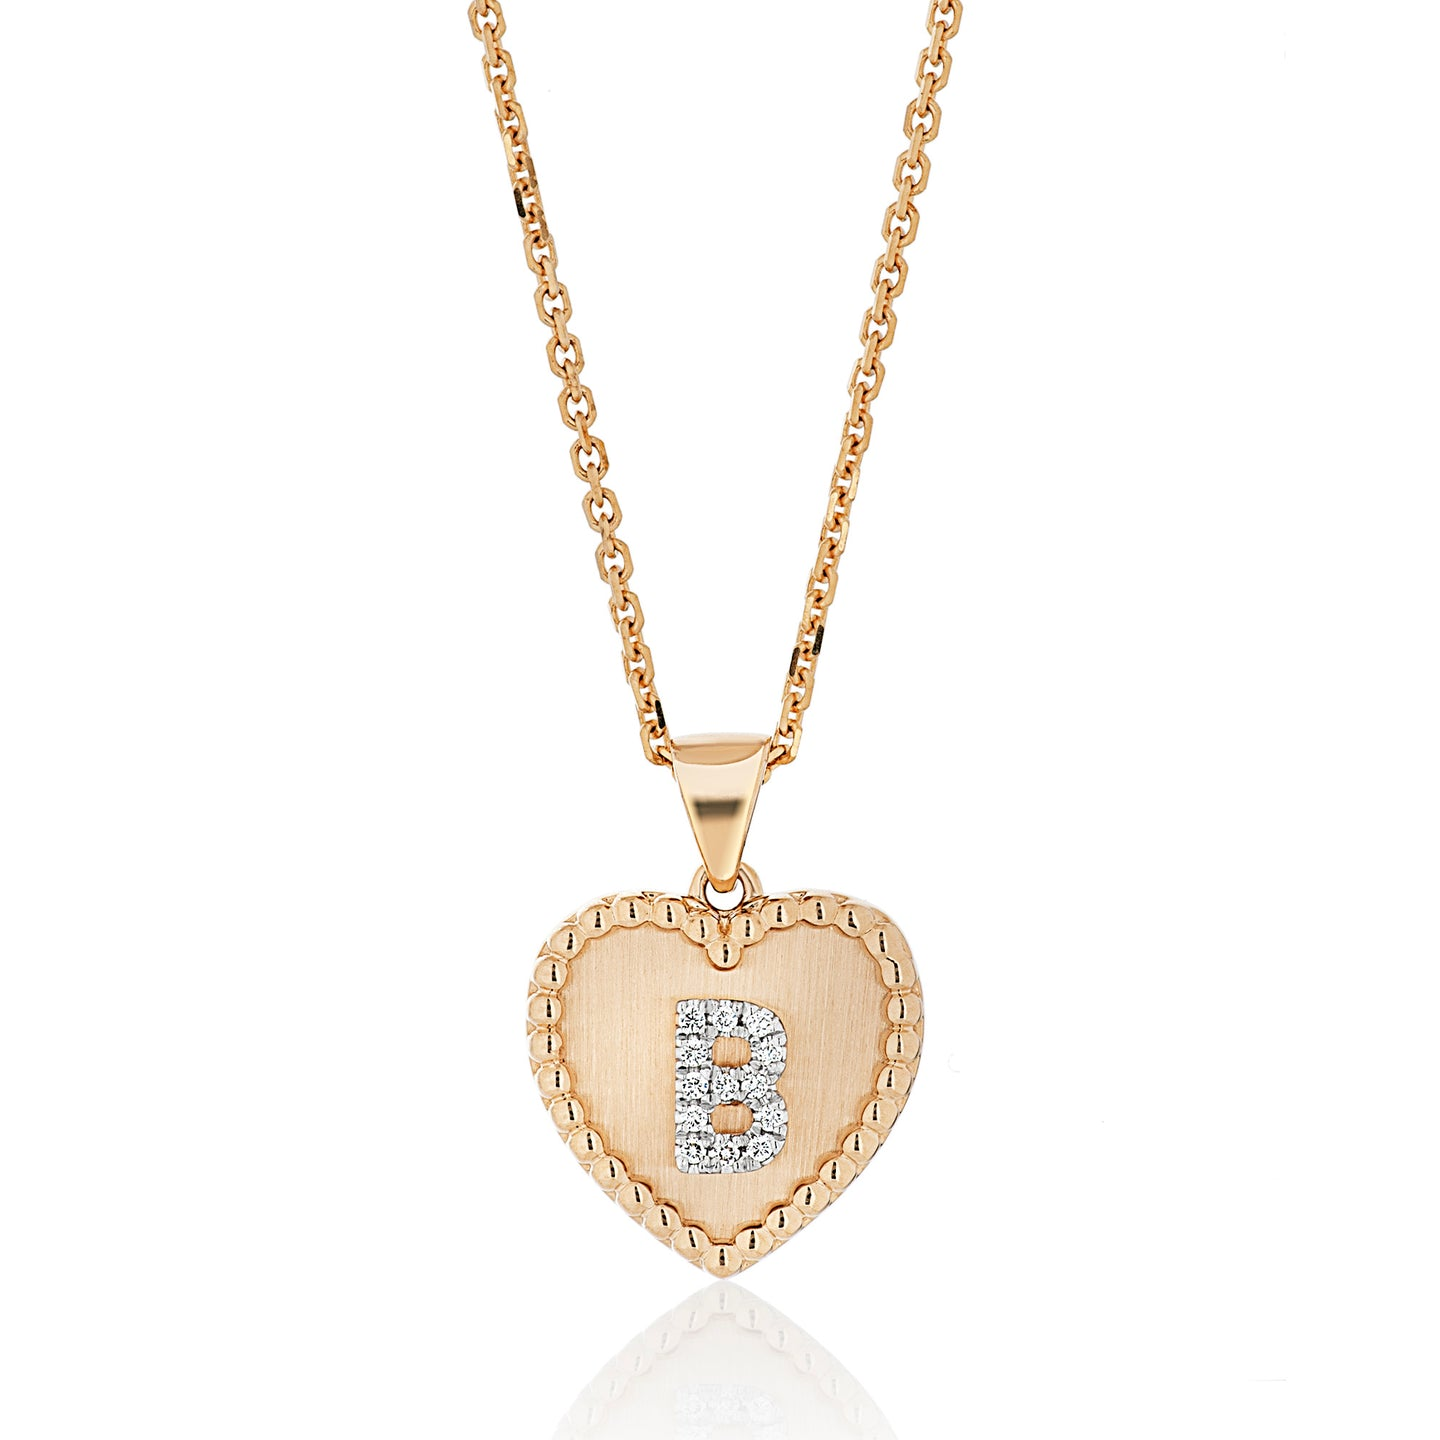 All Gold and Diamond Single Initial Pendant